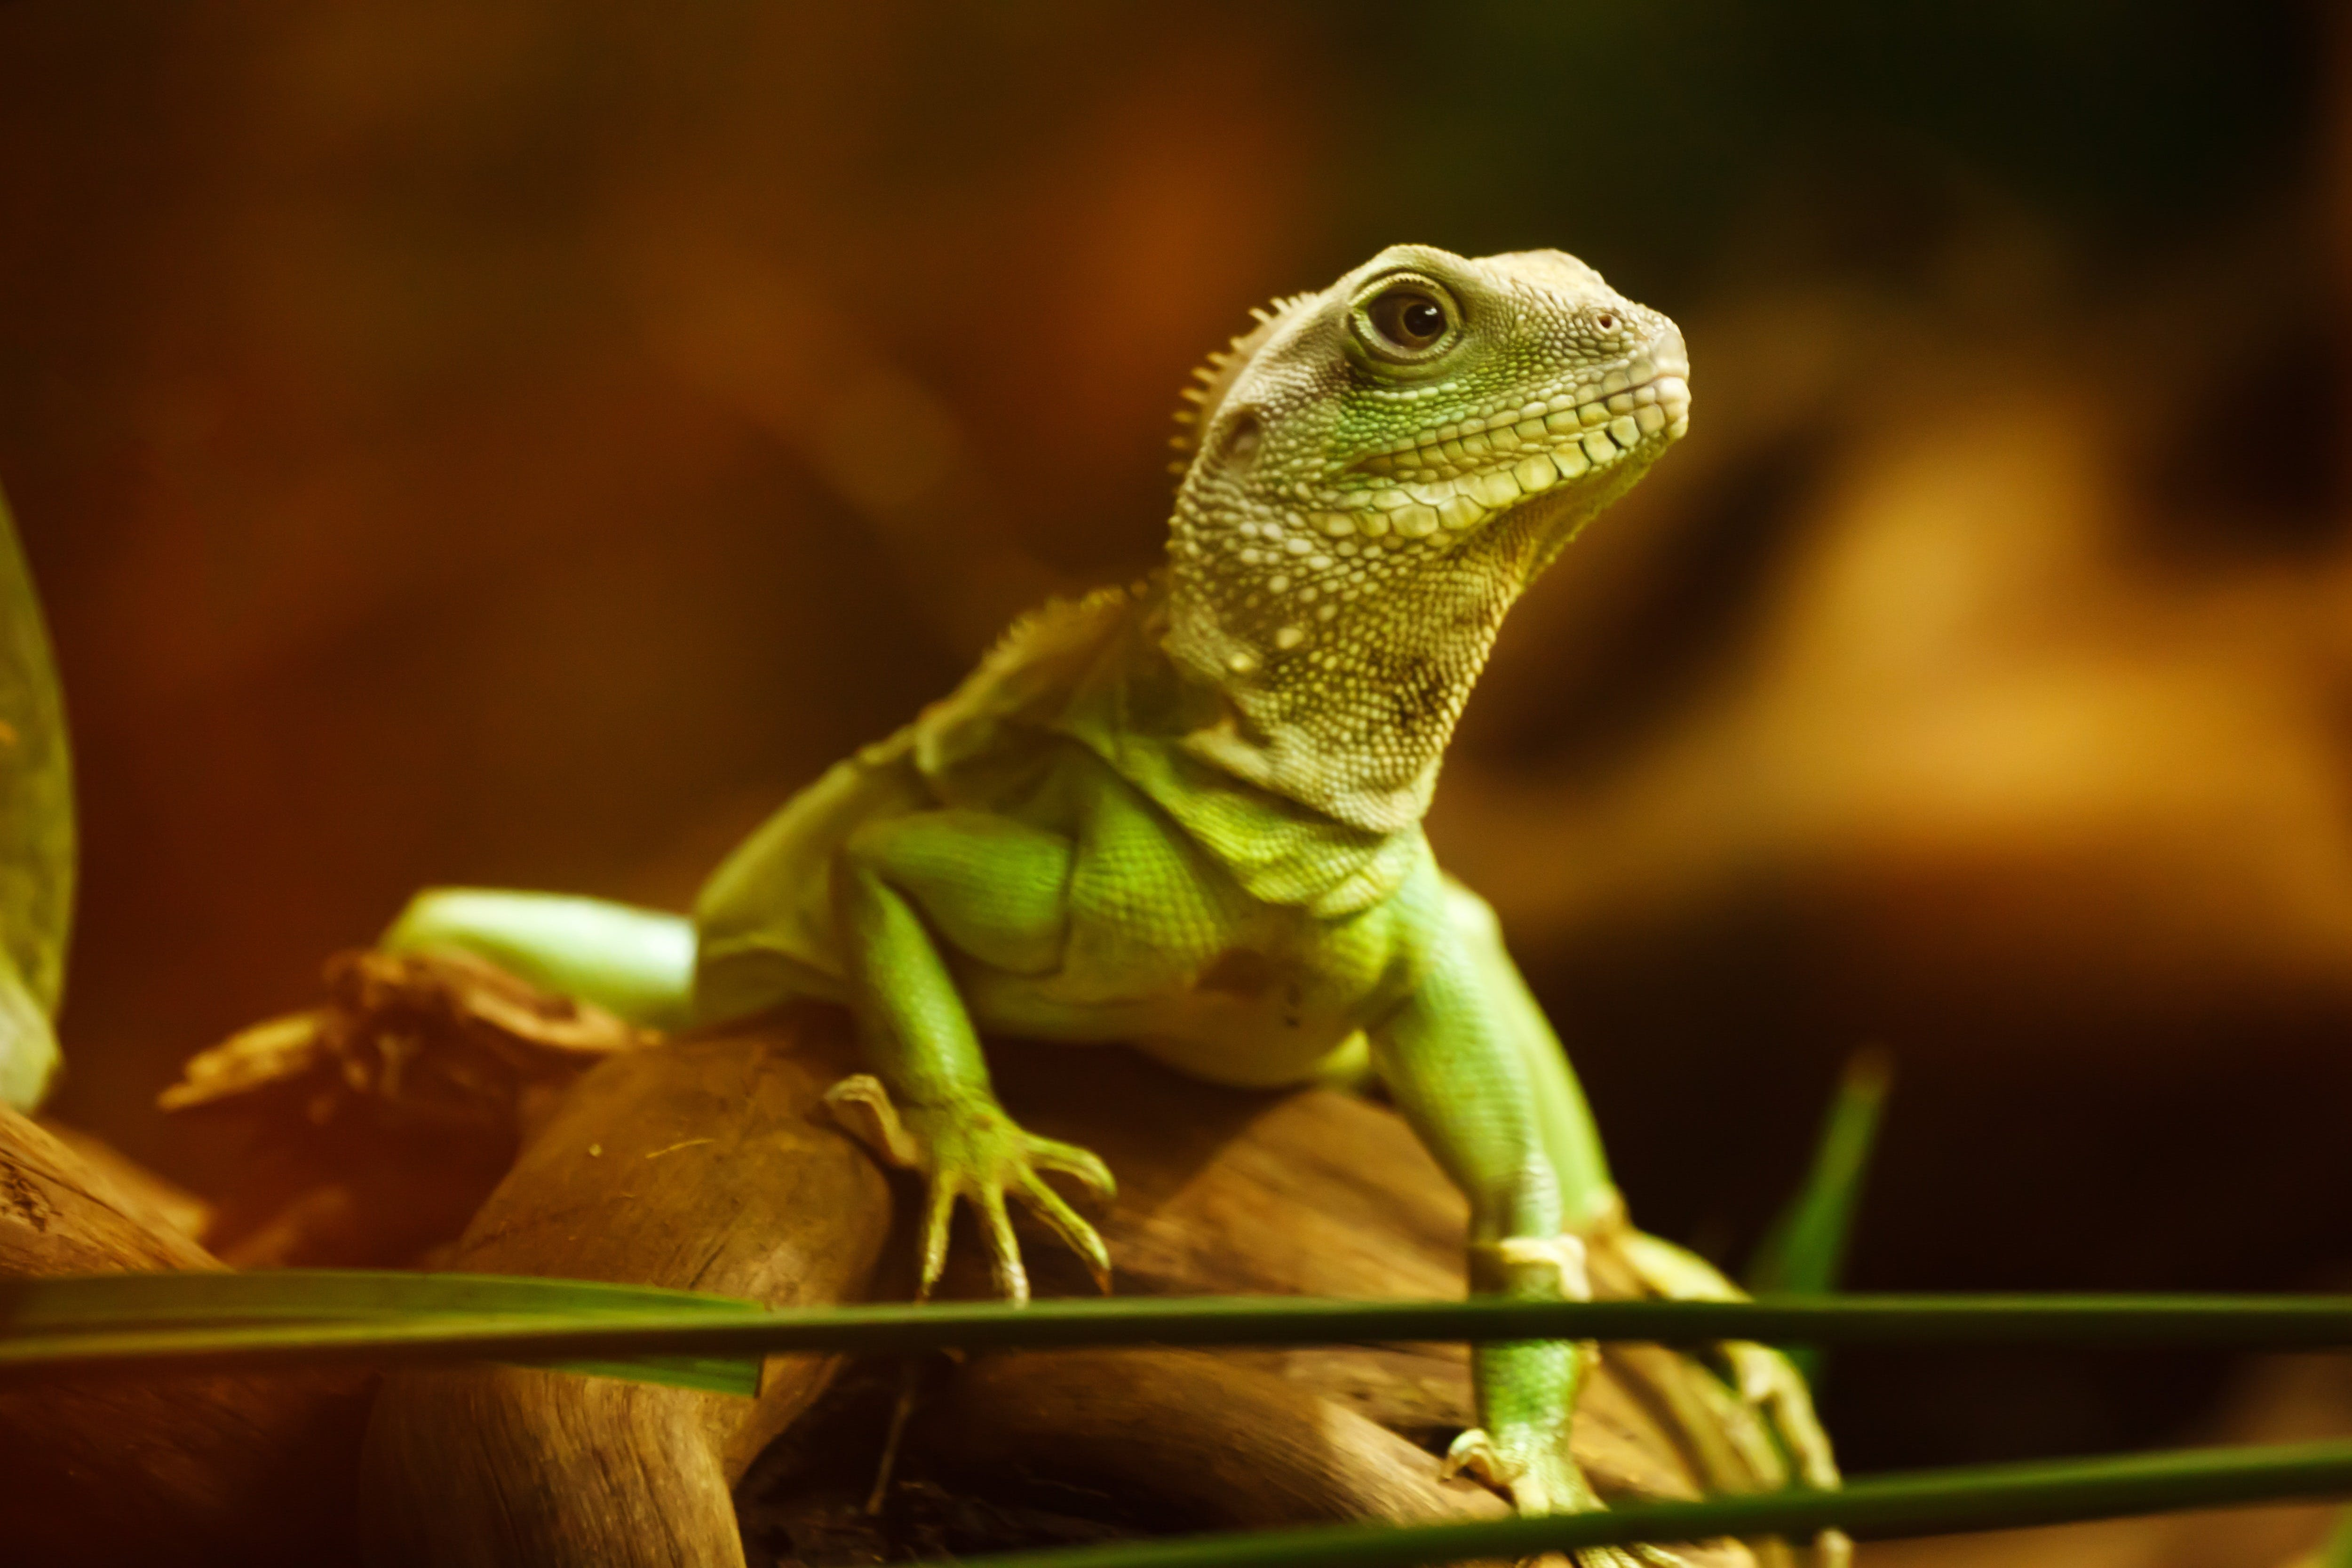 Green Iguana on Brown Wood